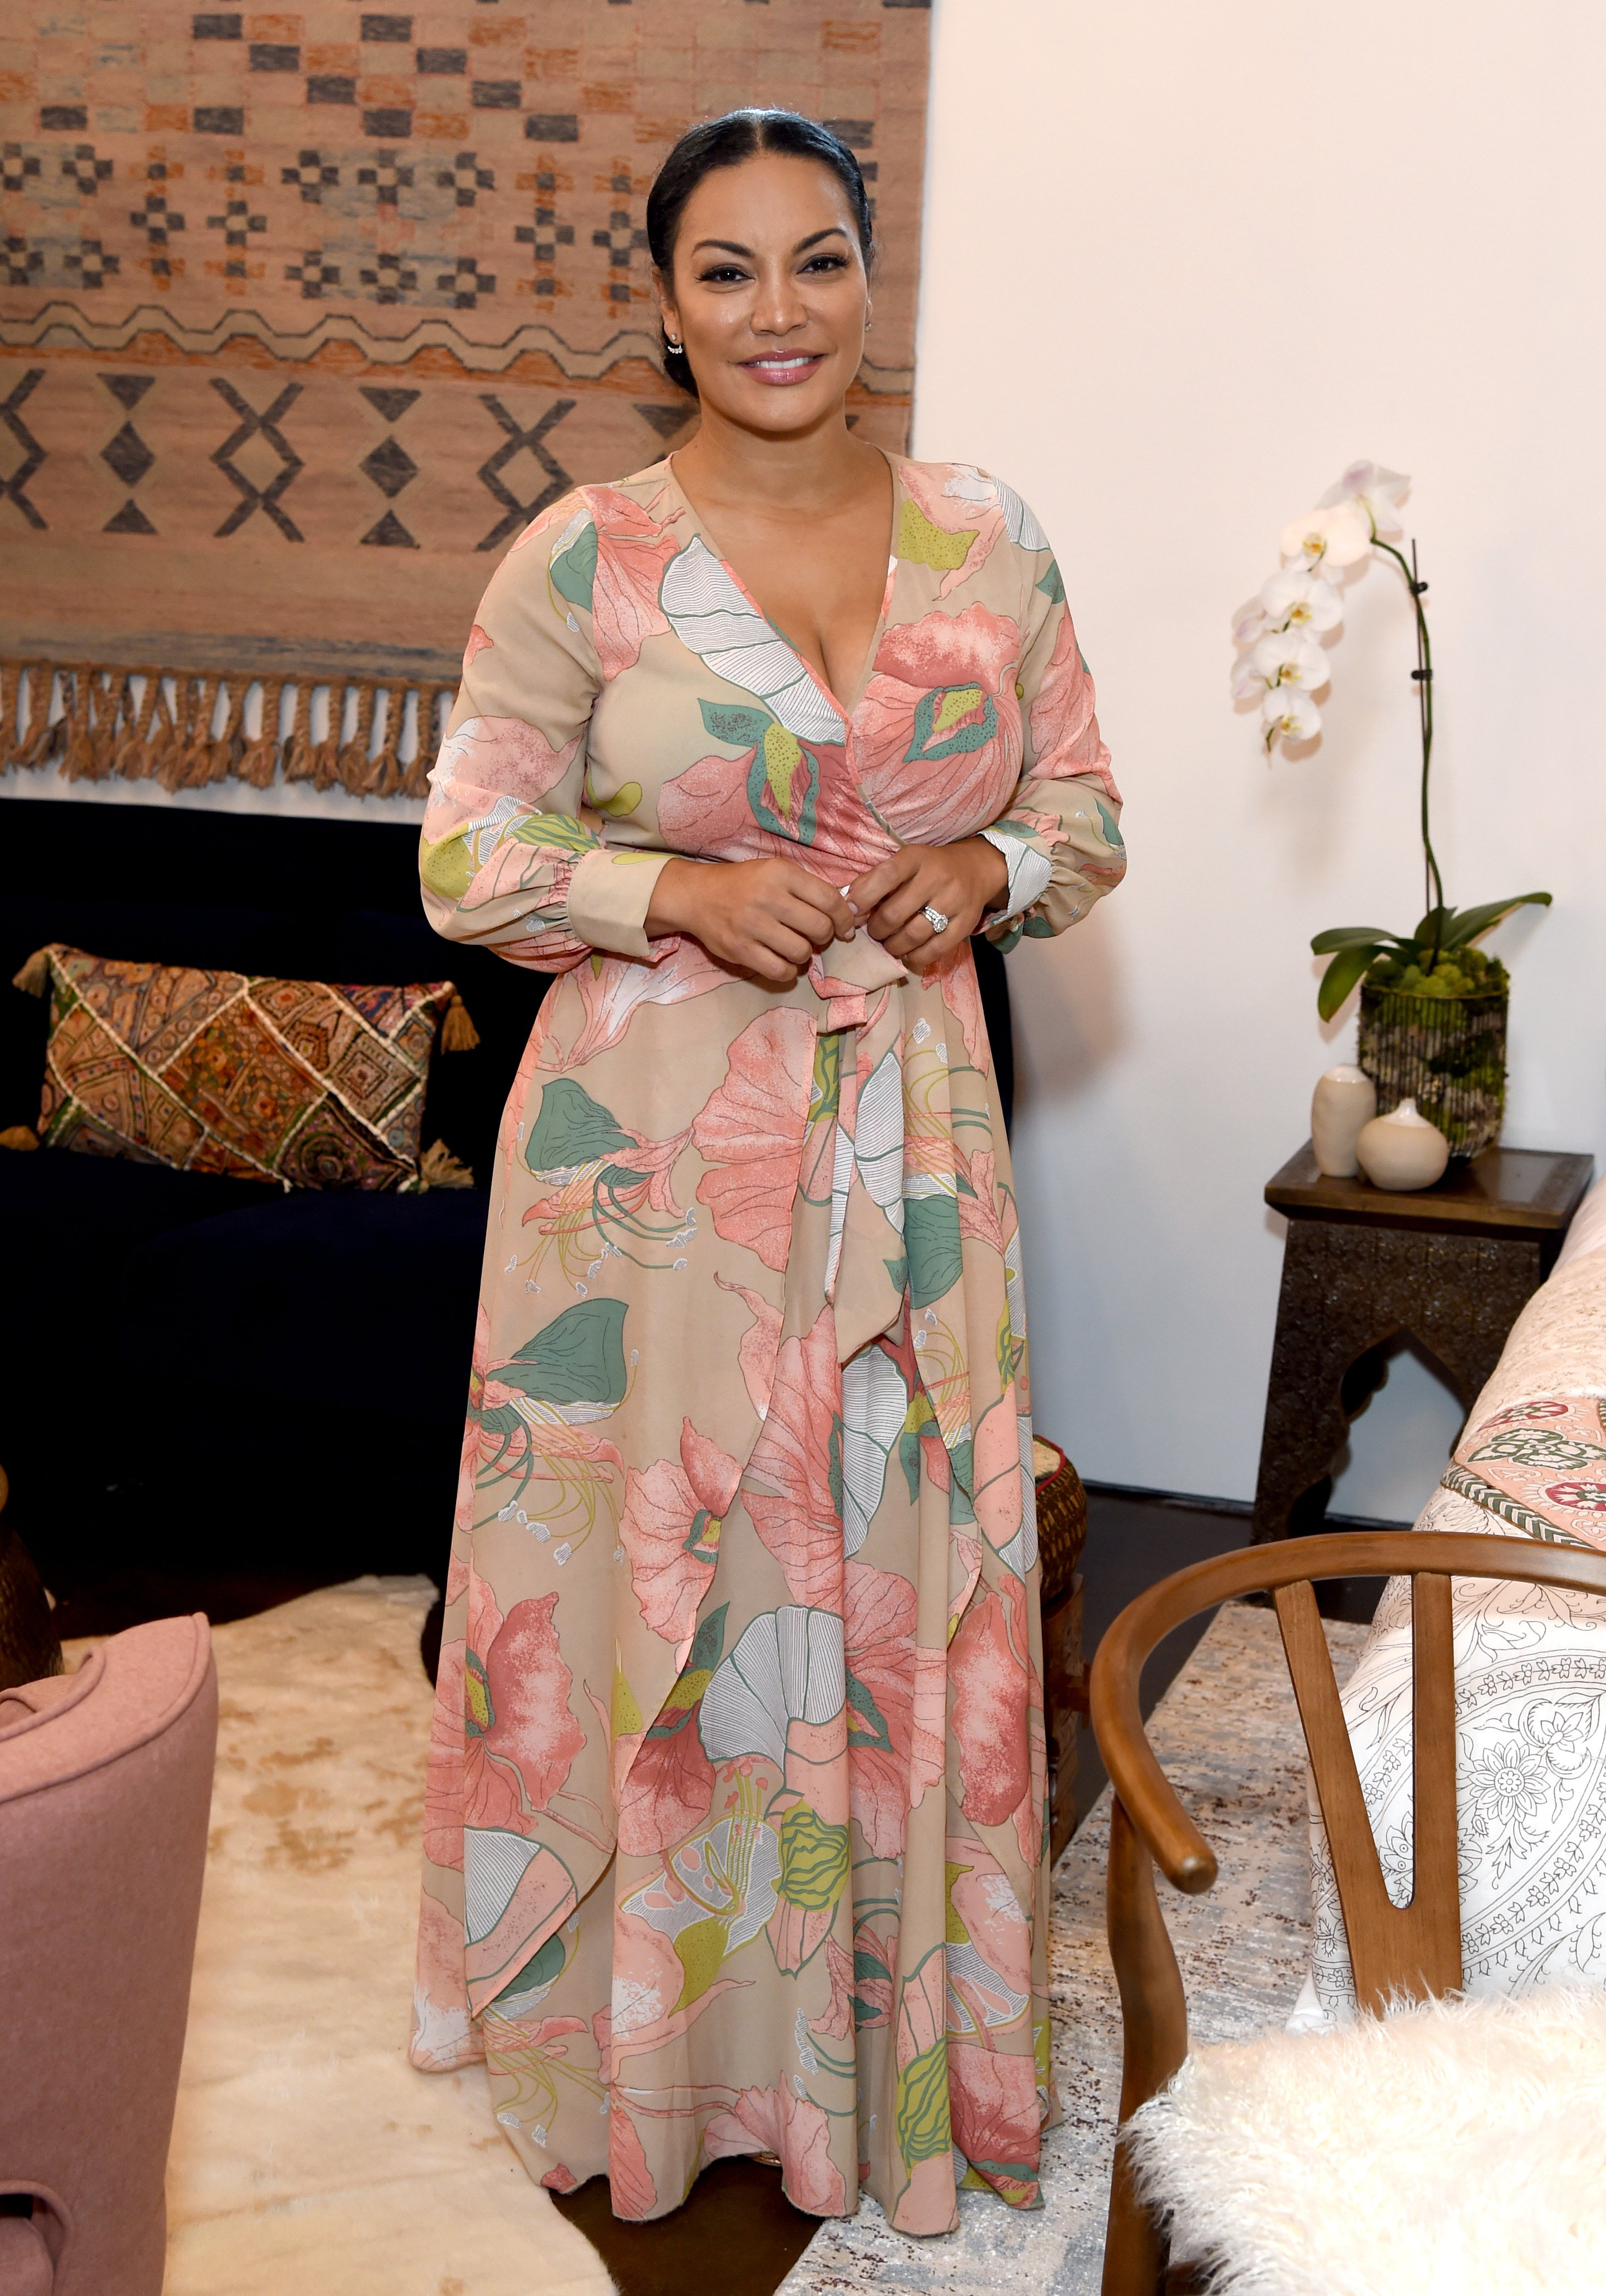 Egypt Sherrod attends the launch of World Market's Fall Small Space Collection on August 5, 2017 in Los Angeles, California.   Photo: GettyImages